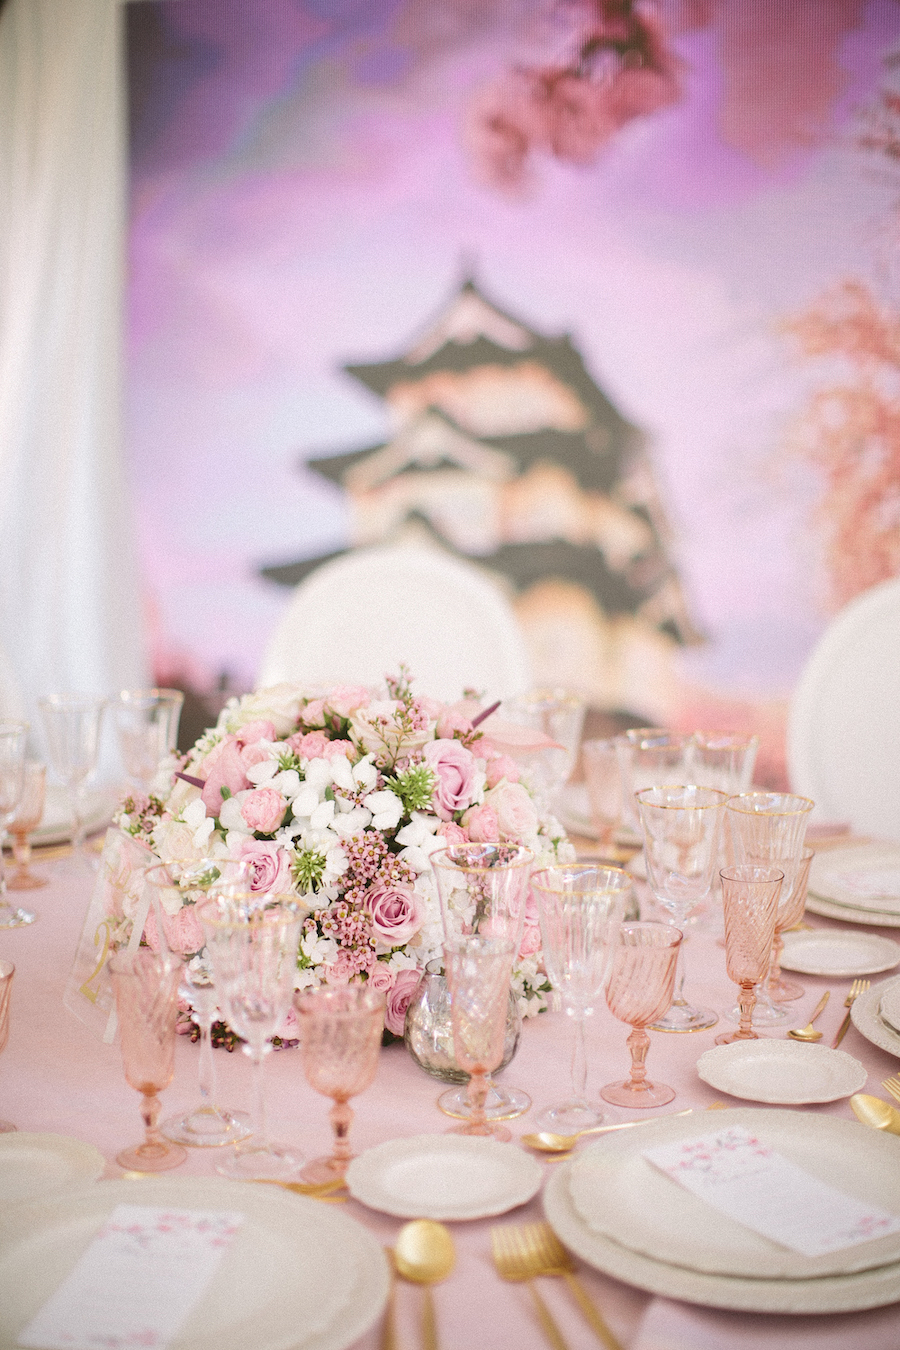 saya-photography-wedding-pink-japanese-spain-22.jpg